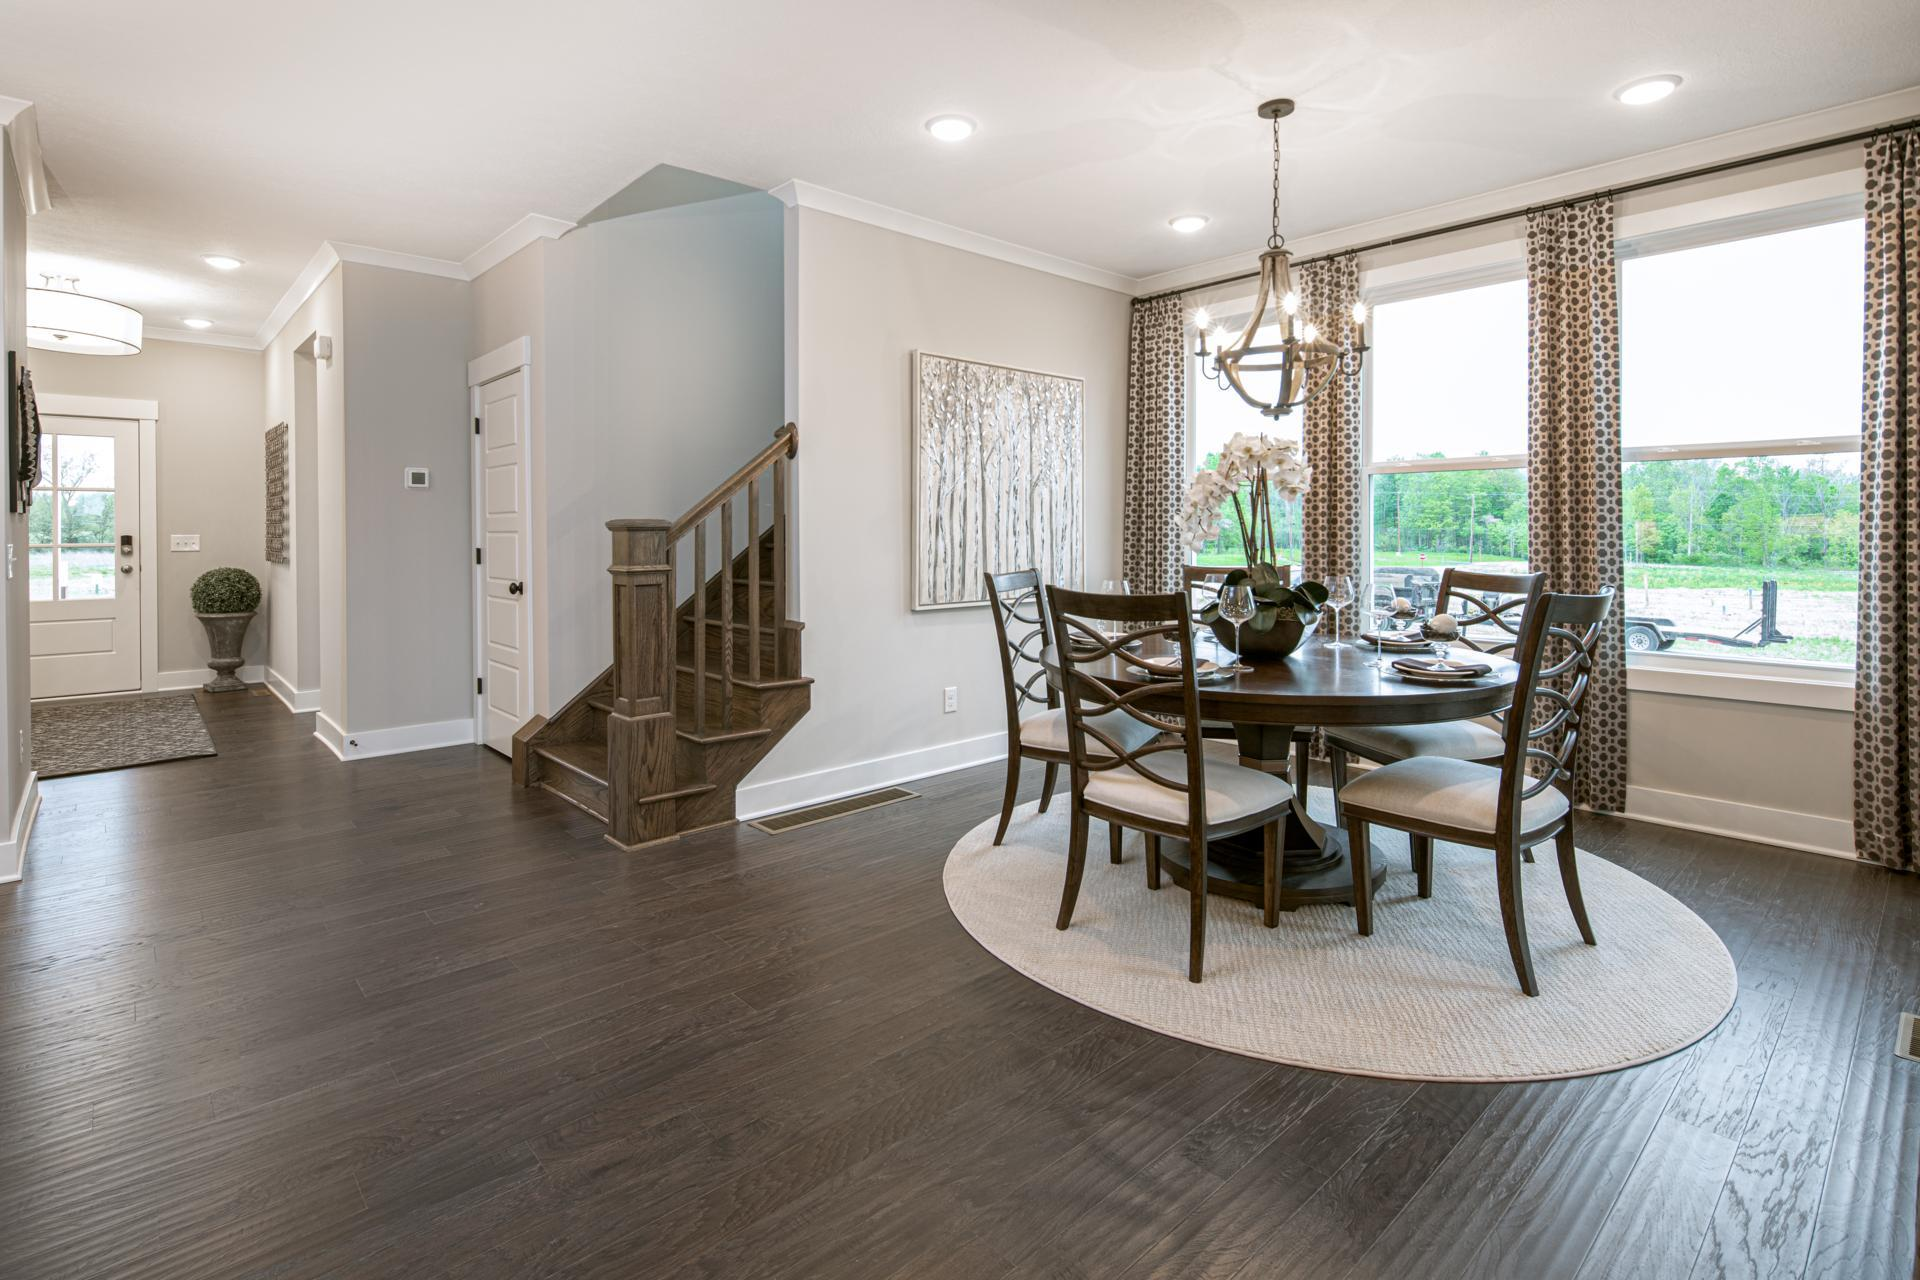 Kitchen featured in the Hollister By Drees Homes in Cleveland, OH